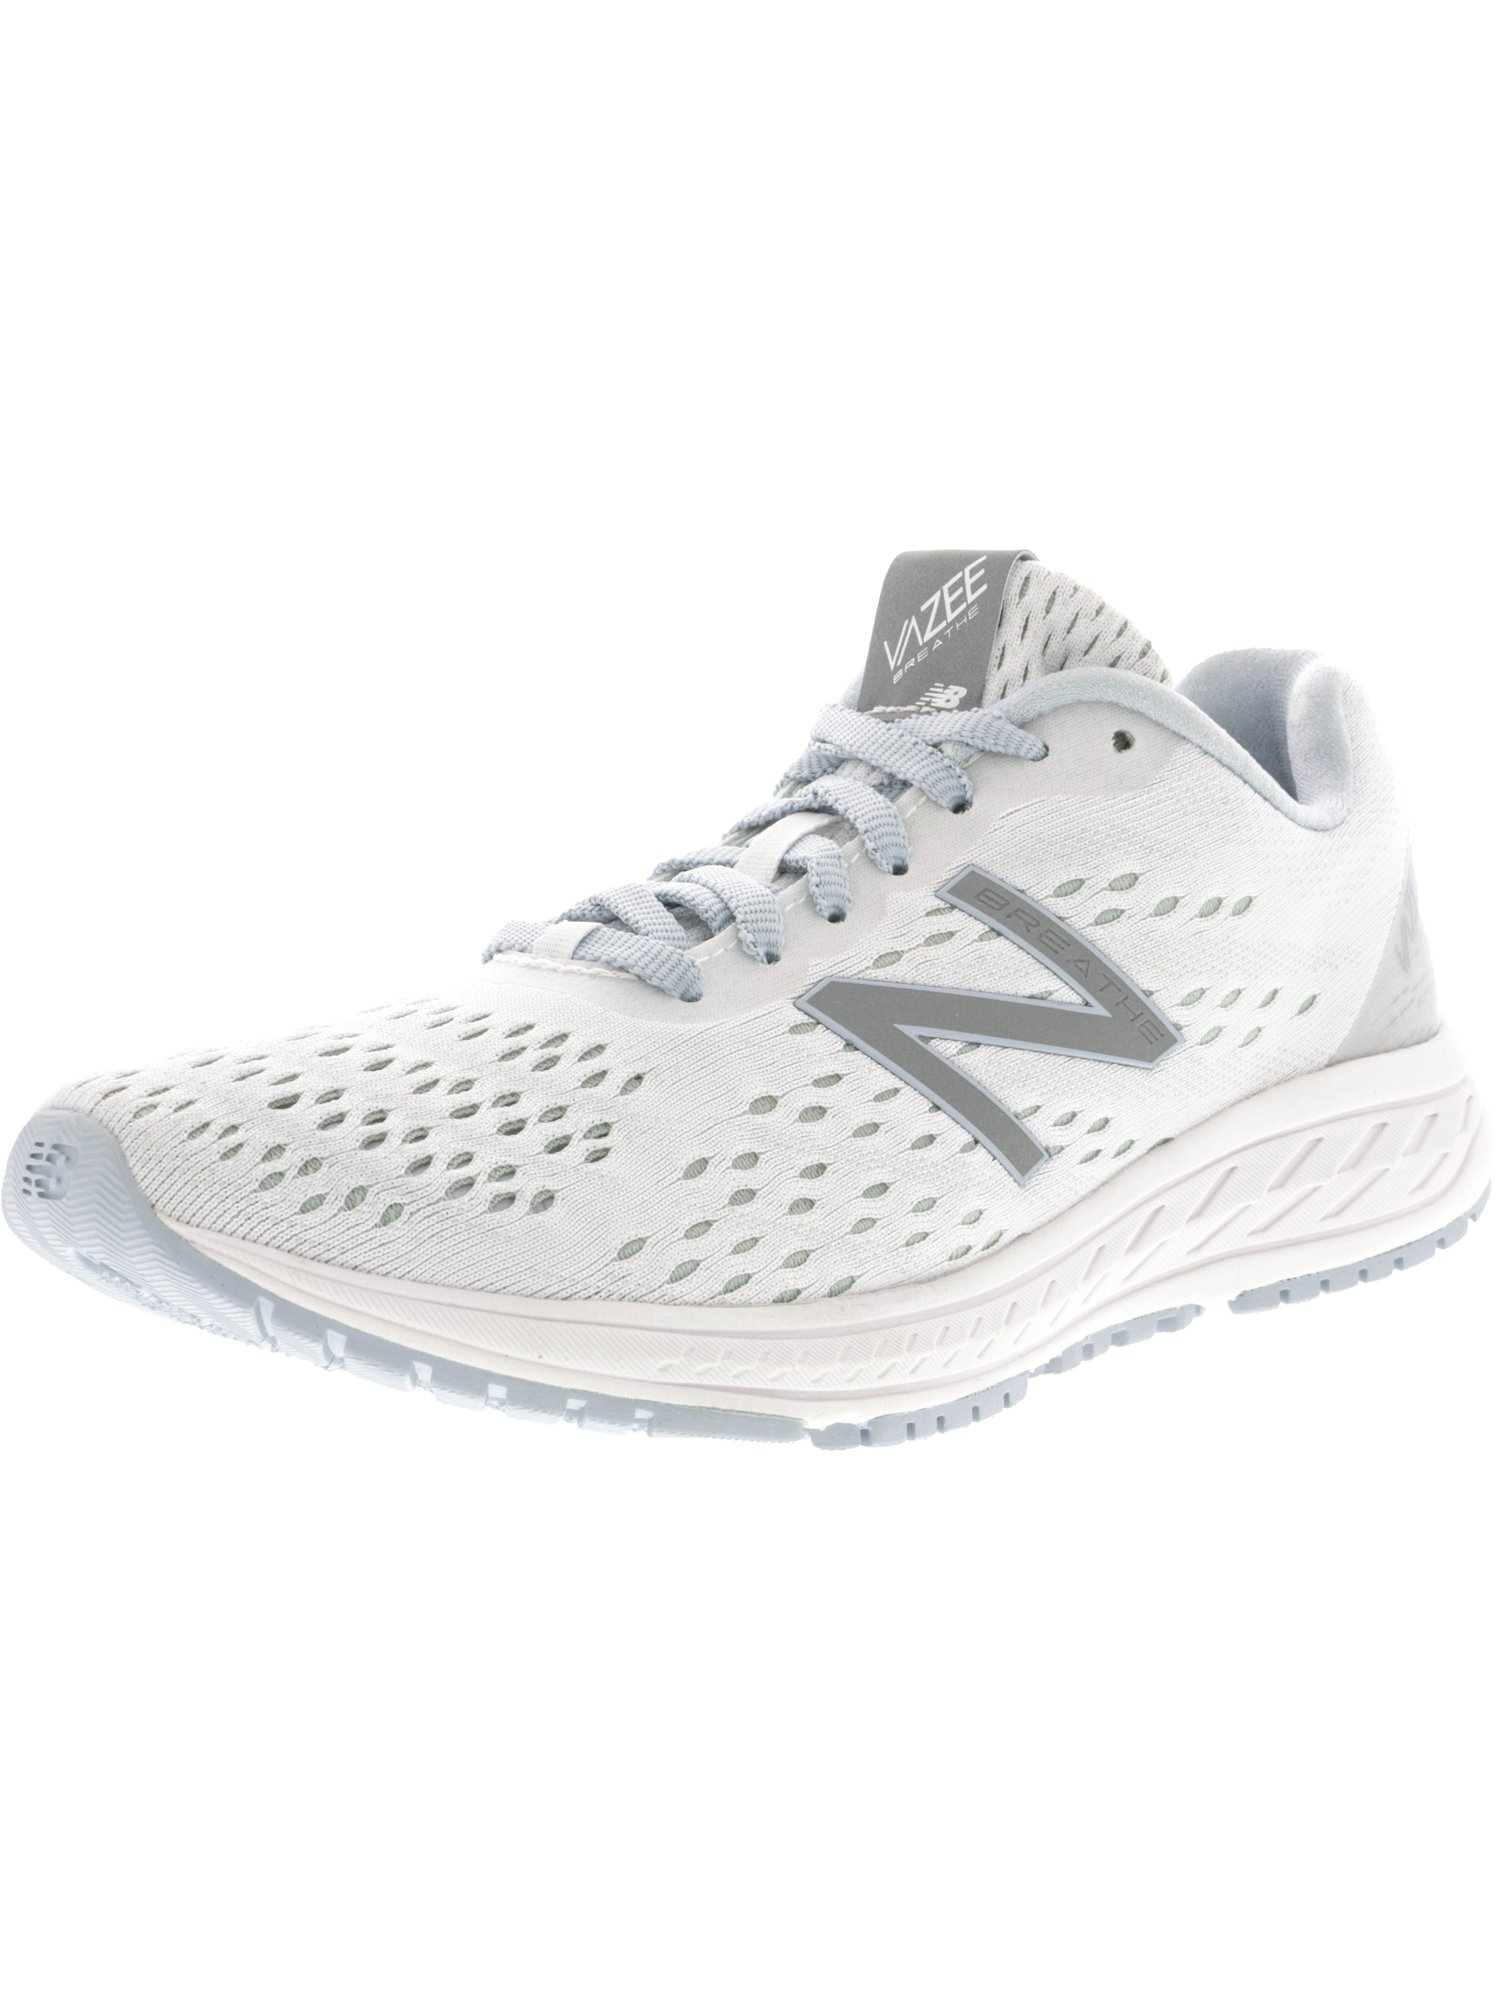 New Balance Women's Wbre Ahl2 Ankle-High Running Shoe 5.5M by New Balance